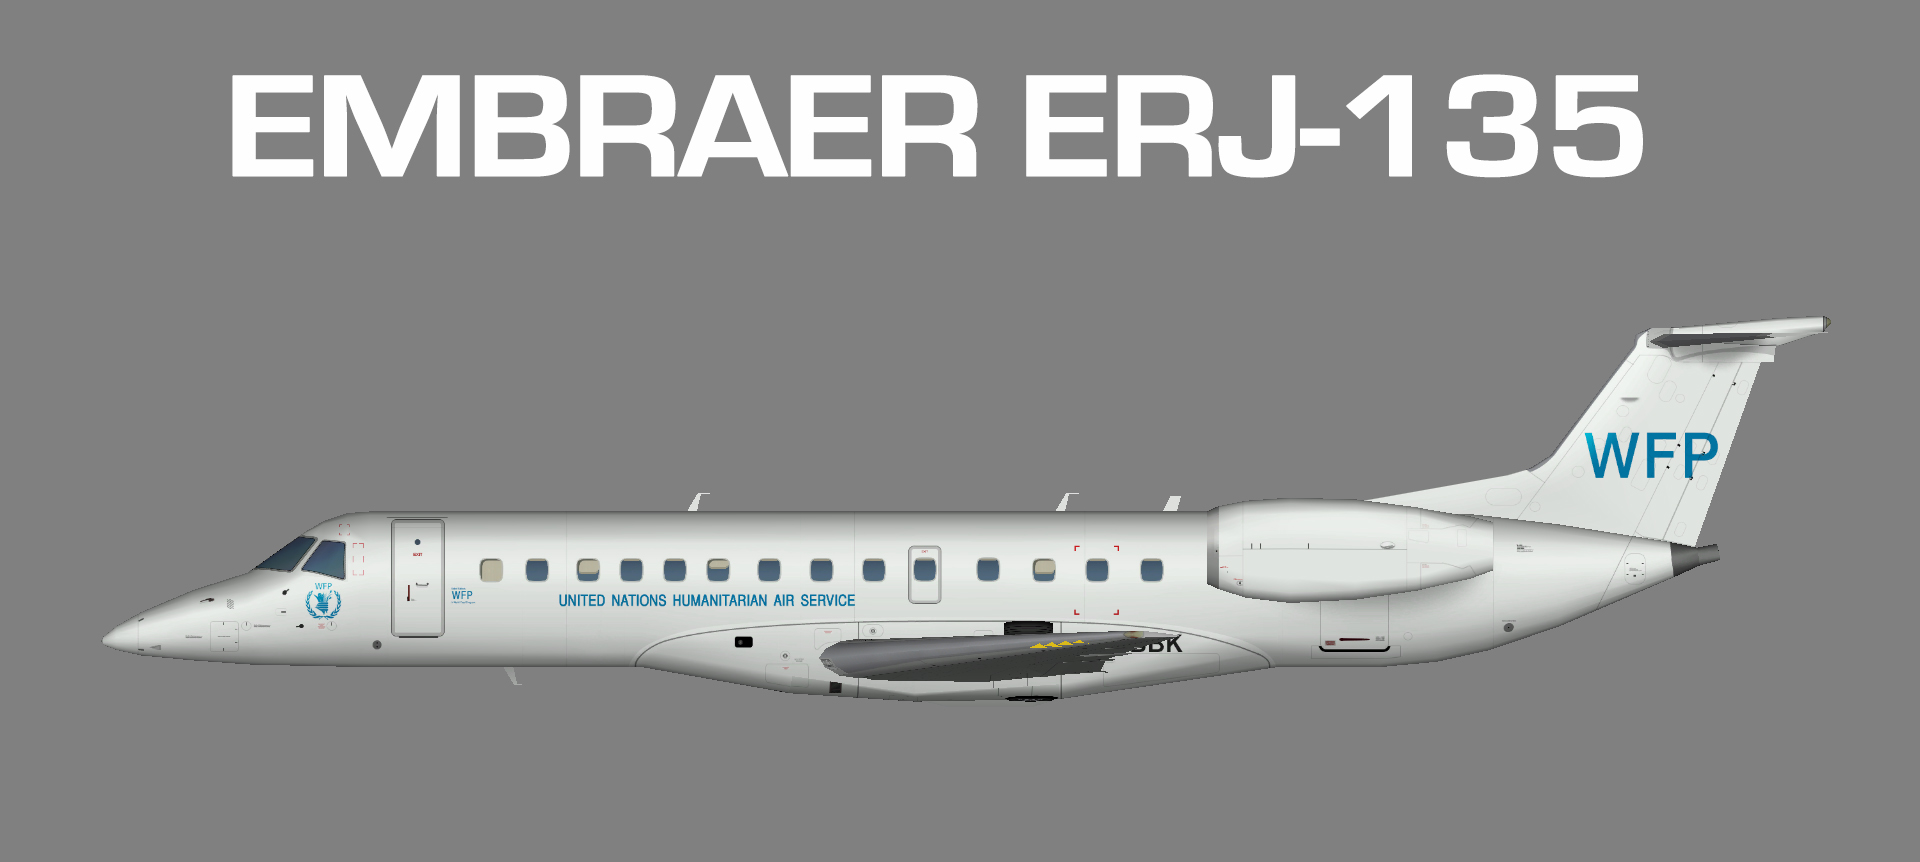 Erj 135 fsx download